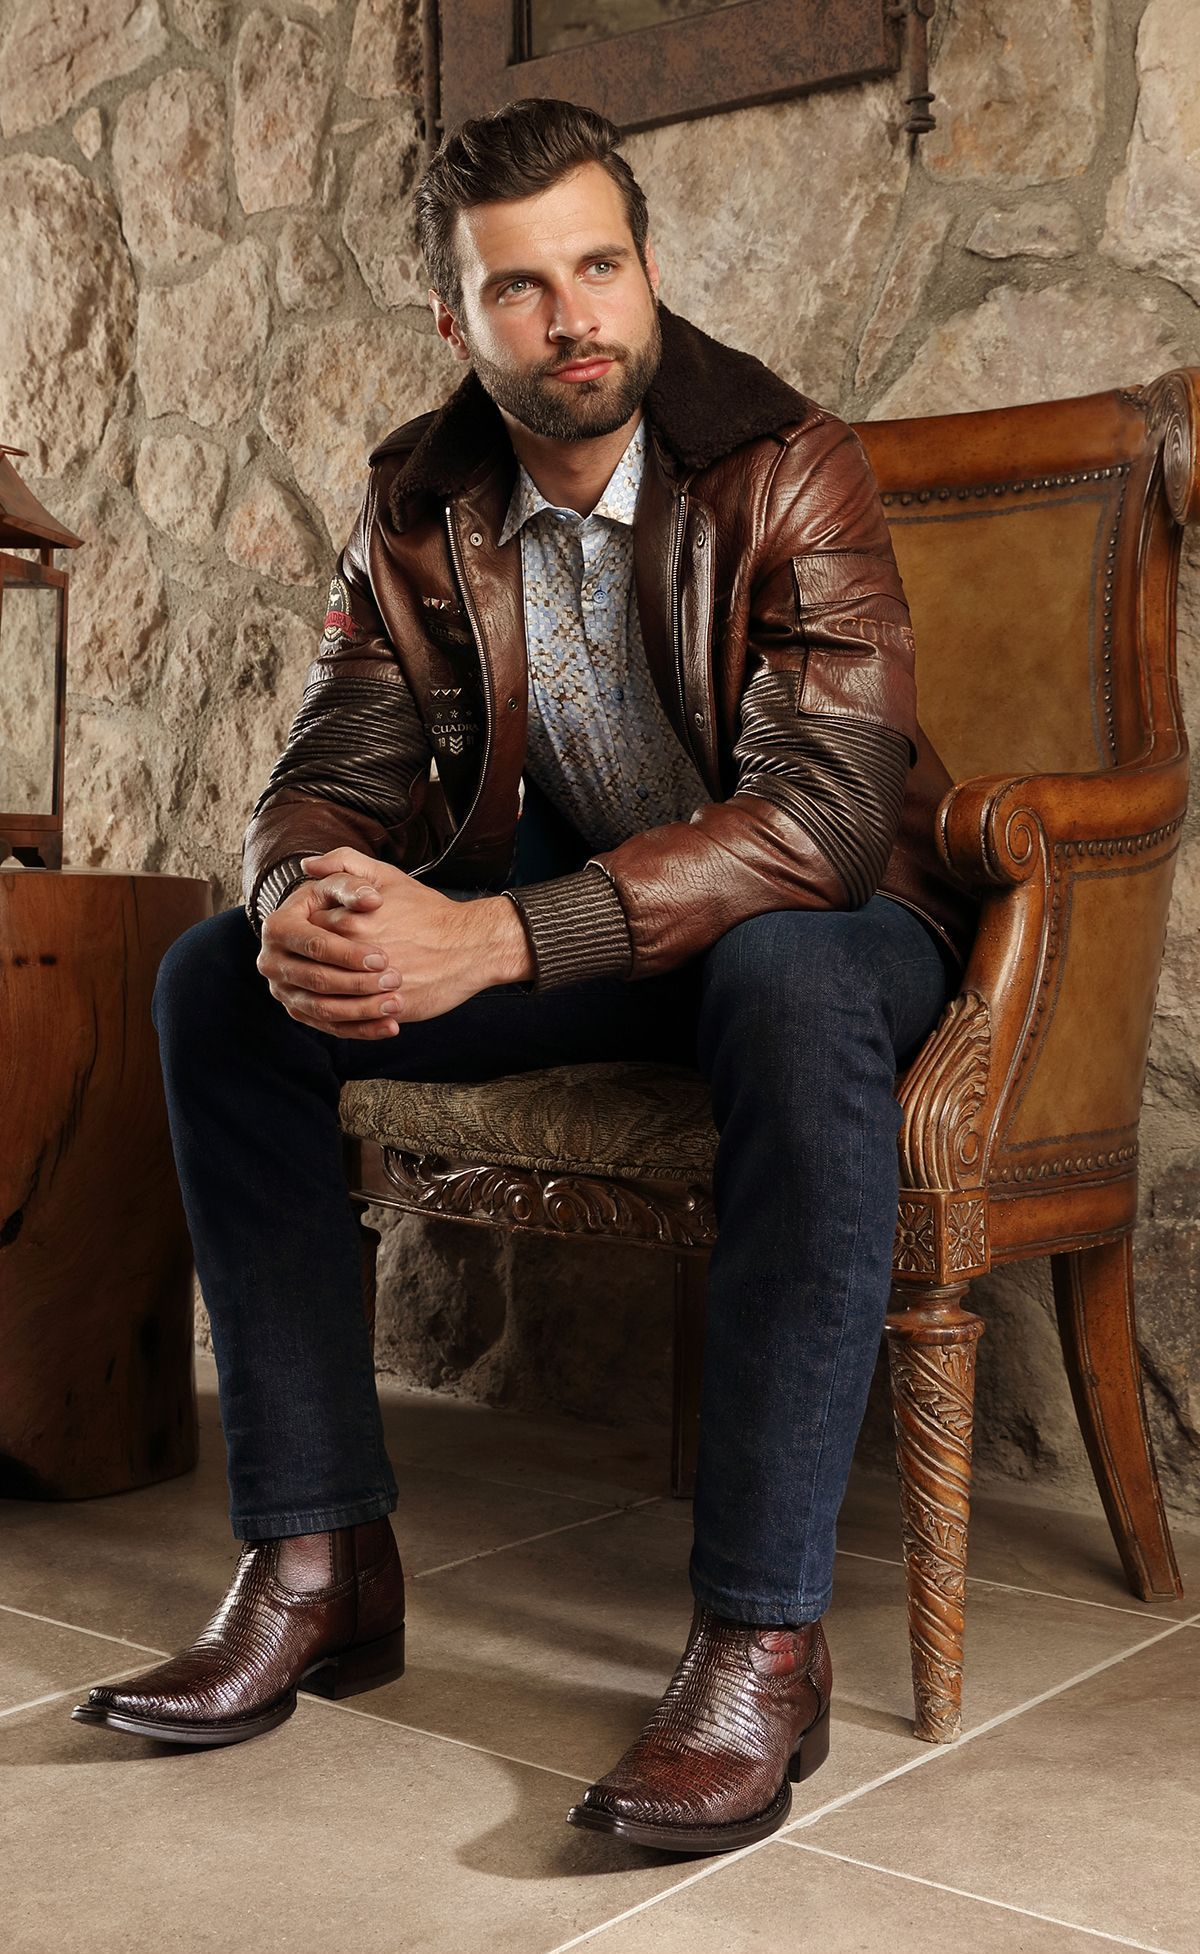 Pin By Yoandris On Louis In 2020 Cowboy Outfit For Men Cowboy Outfits Boots Outfit Men